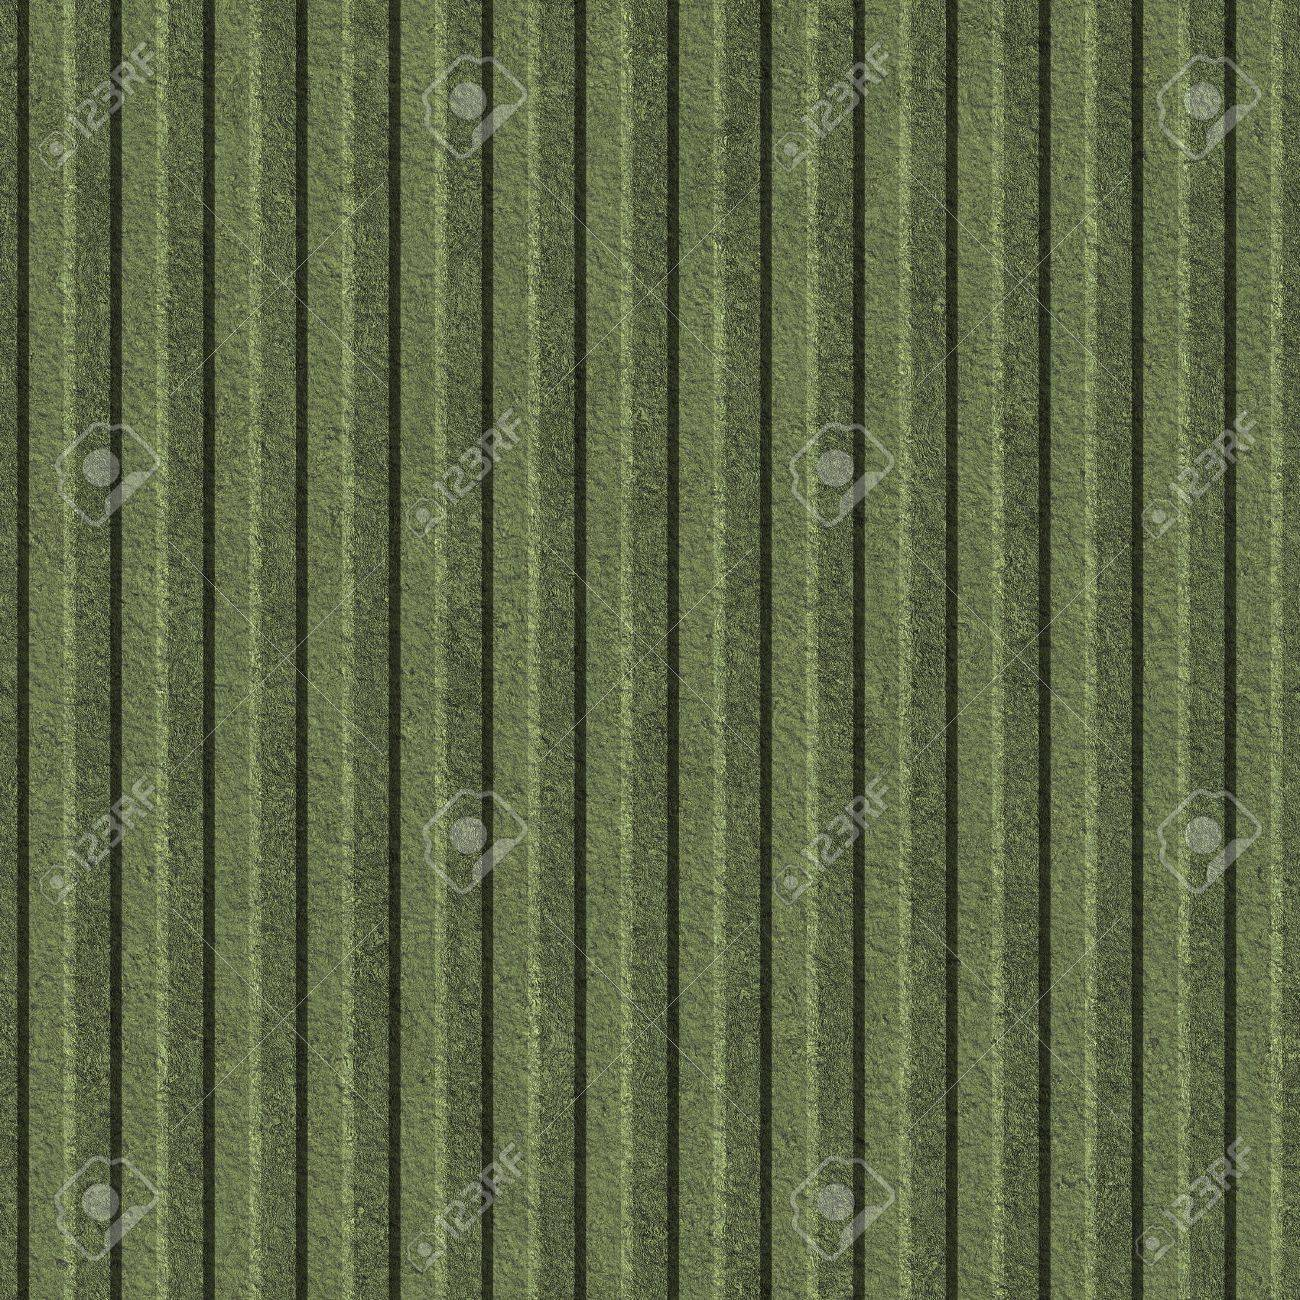 Corrugated Metal  Seamless texture  Stock Photo   14231929. Corrugated Metal  Seamless Texture  Stock Photo  Picture And